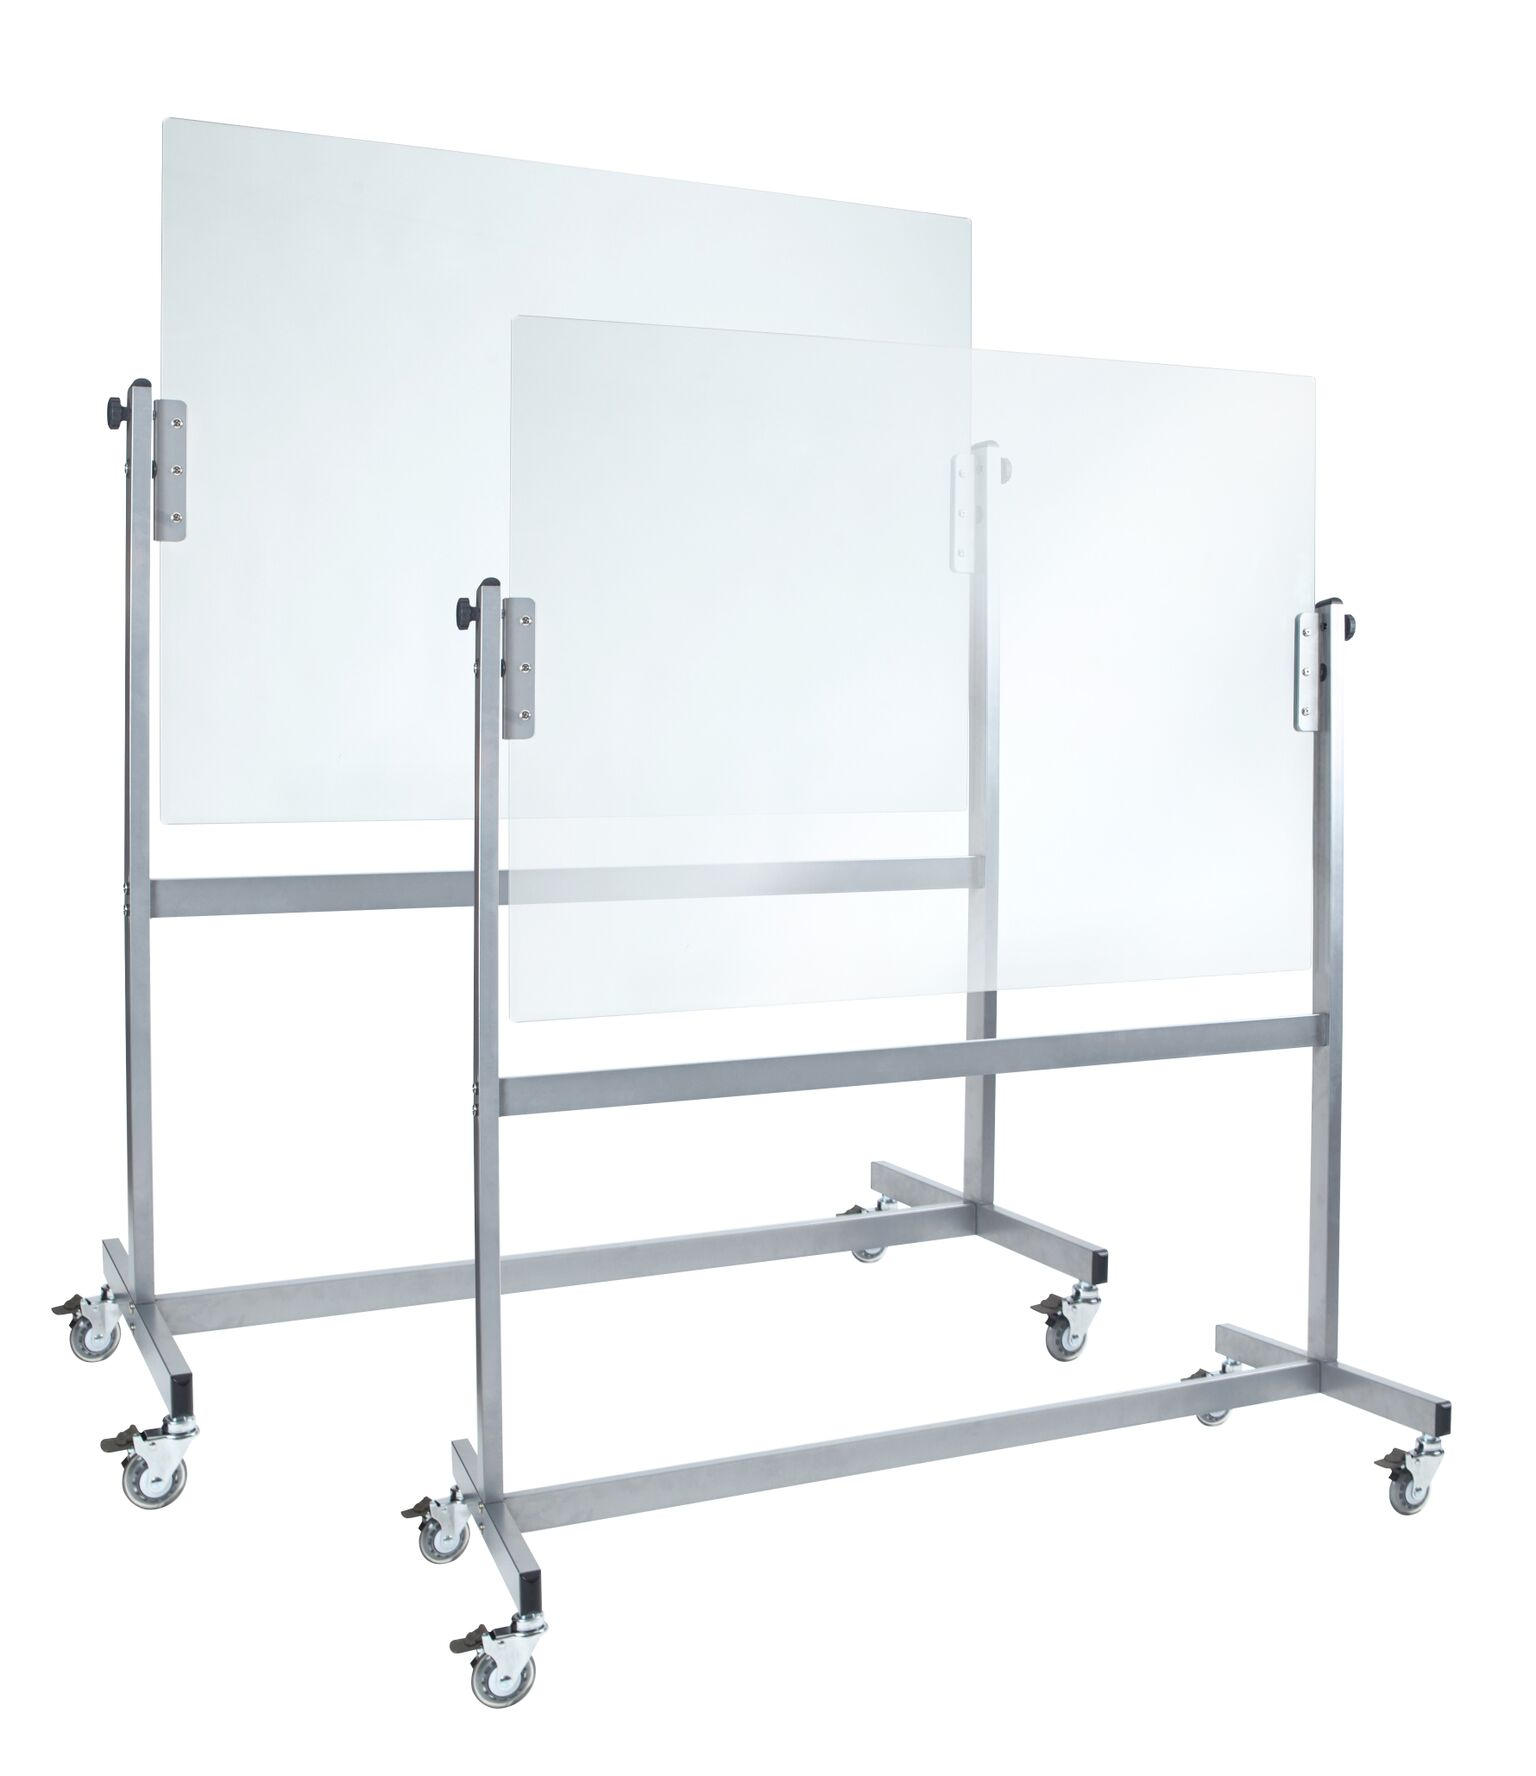 Two Double Sided Pivoting White Glassboards